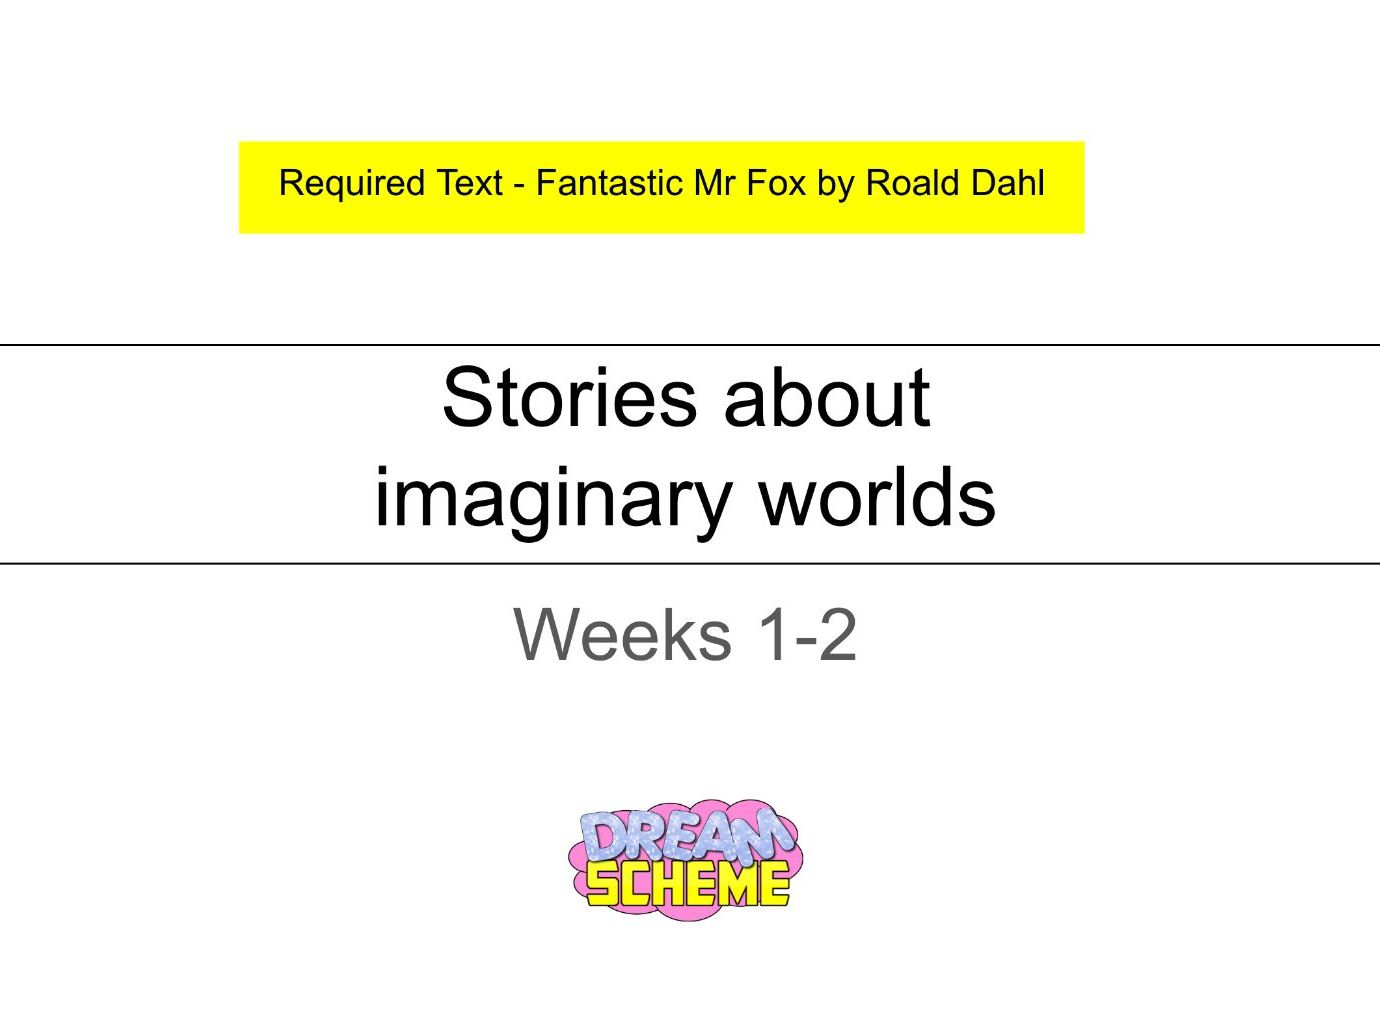 Year 3 - 10 Lessons relating to Imaginary Worlds  (Fantastic Mr Fox)